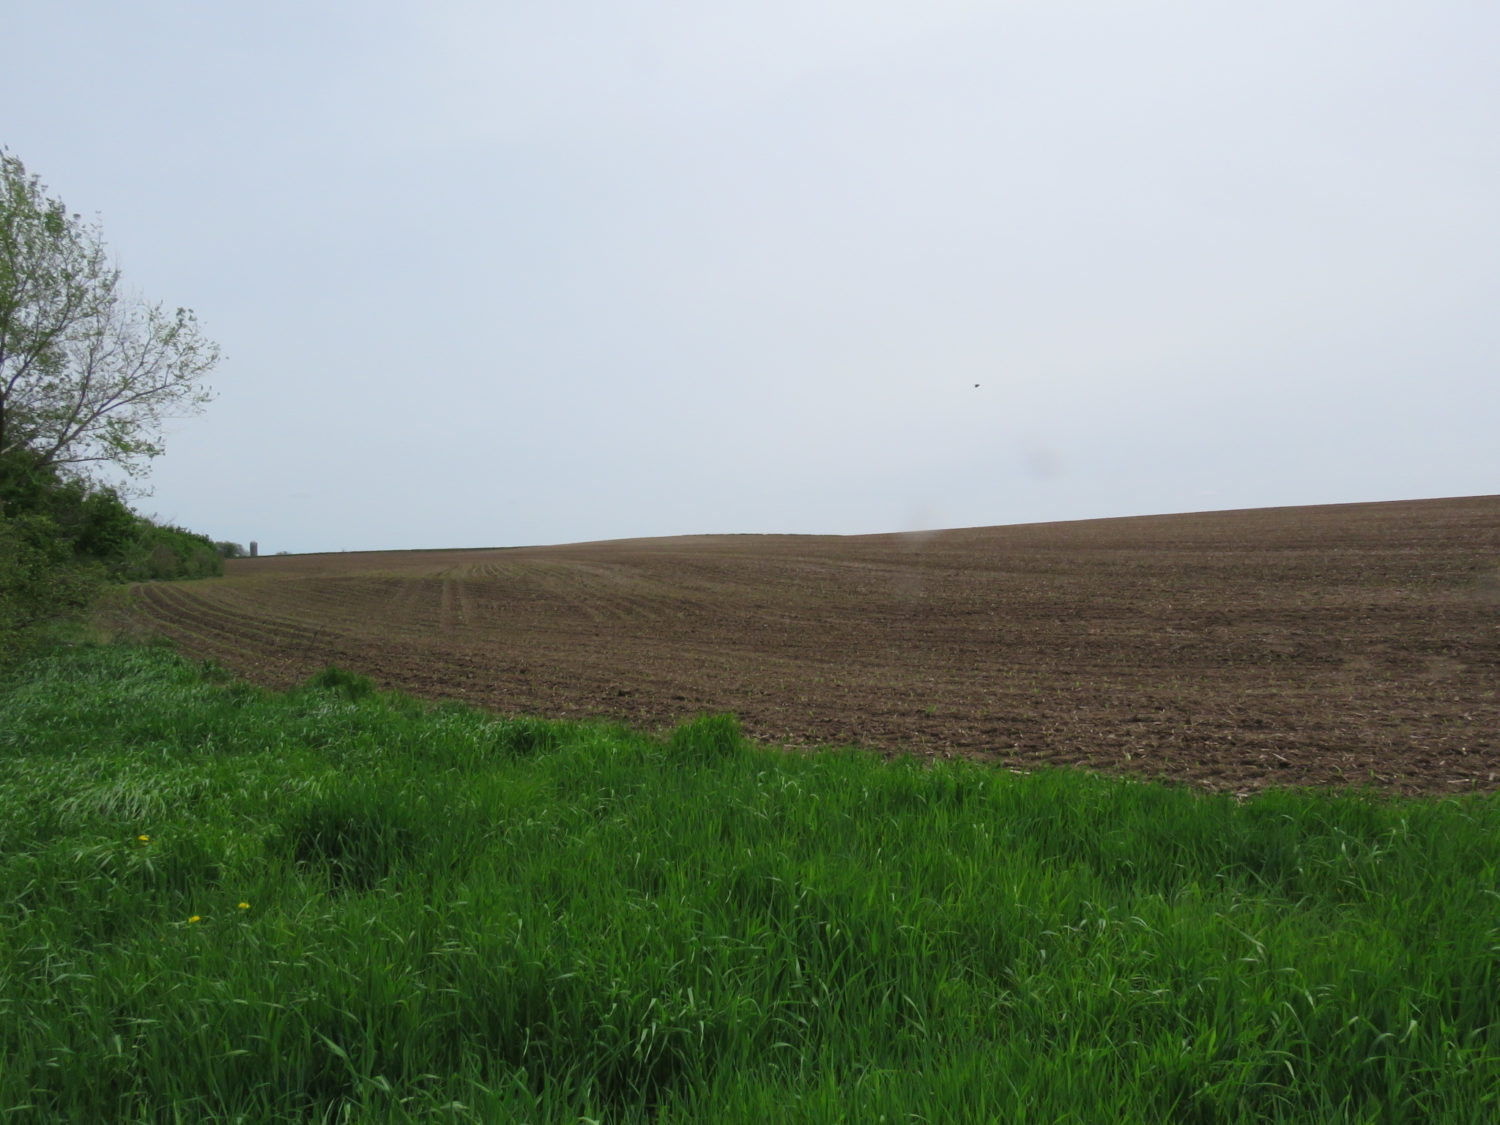 Amazing Real Estate Opportunity-Approx. 73 Acres at Auction- The Valley Springs Farm - image 11